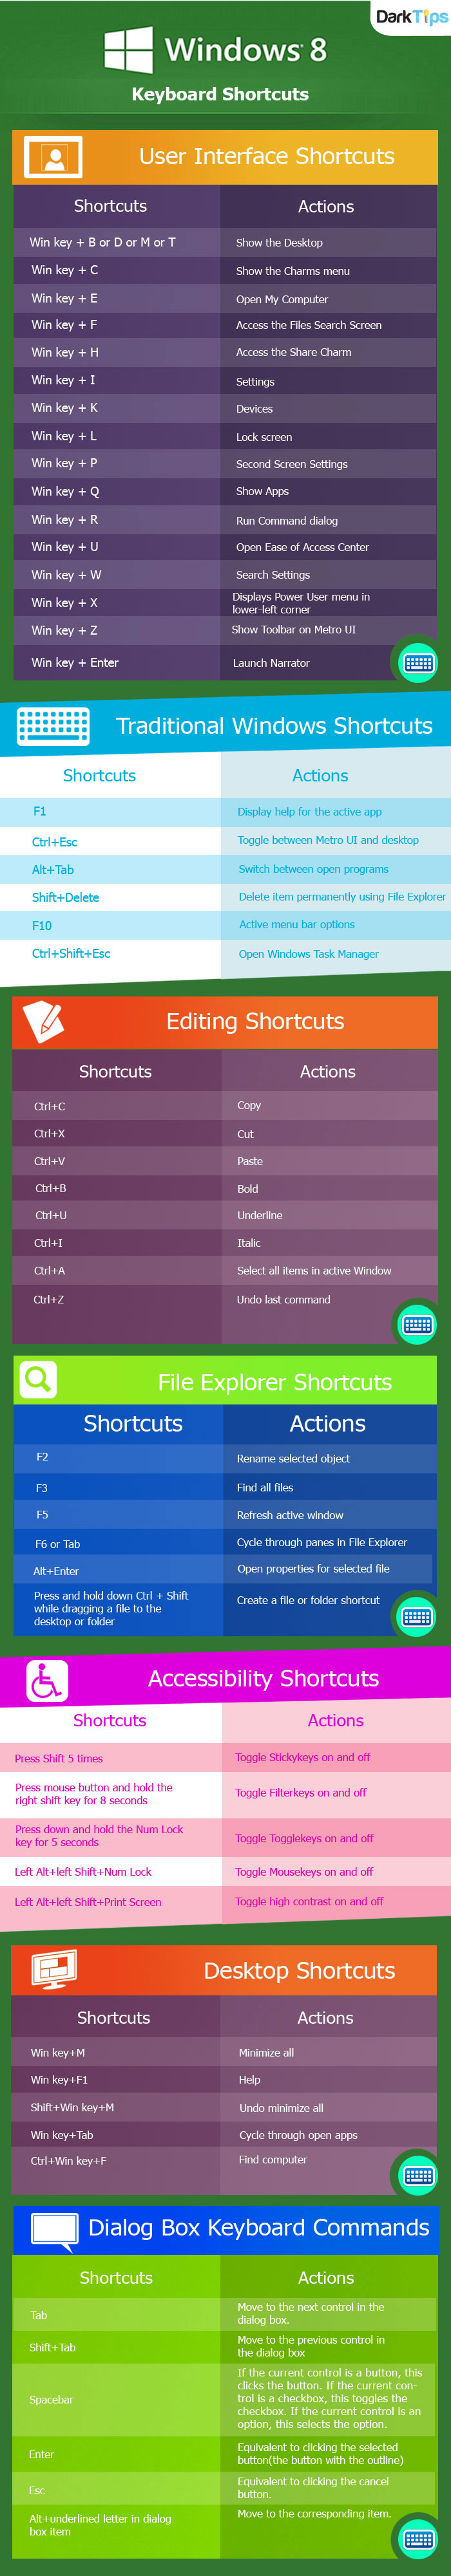 Windows-8-Keyboard-Shortcut-Cheat-Sheet-03